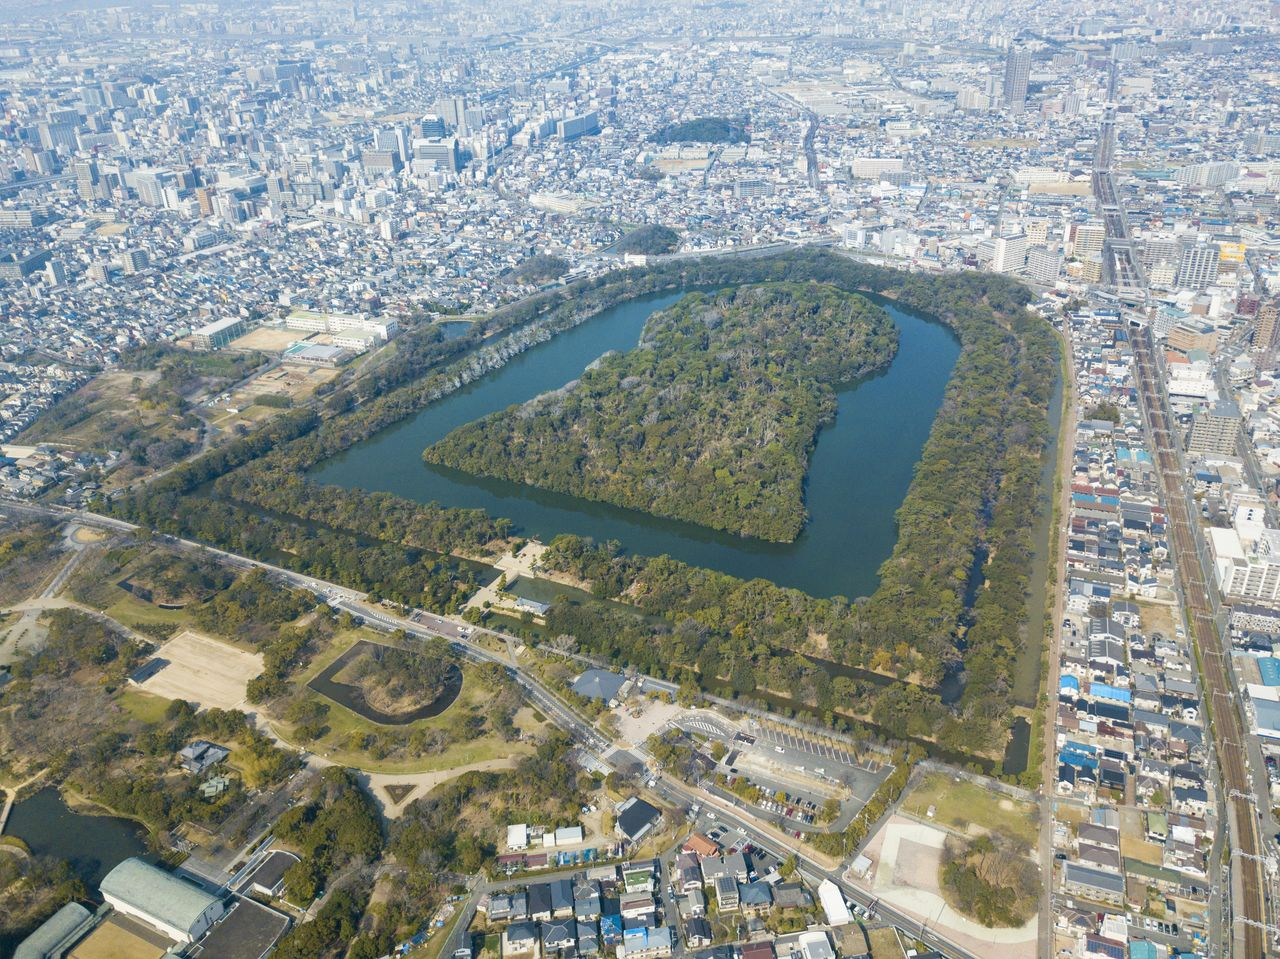 The Emperor Nintoku Burial Mound has three concentric moats. To the south of the site, in the lower part of the photo, is Daisen Park, which abuts the larger burial mound site.